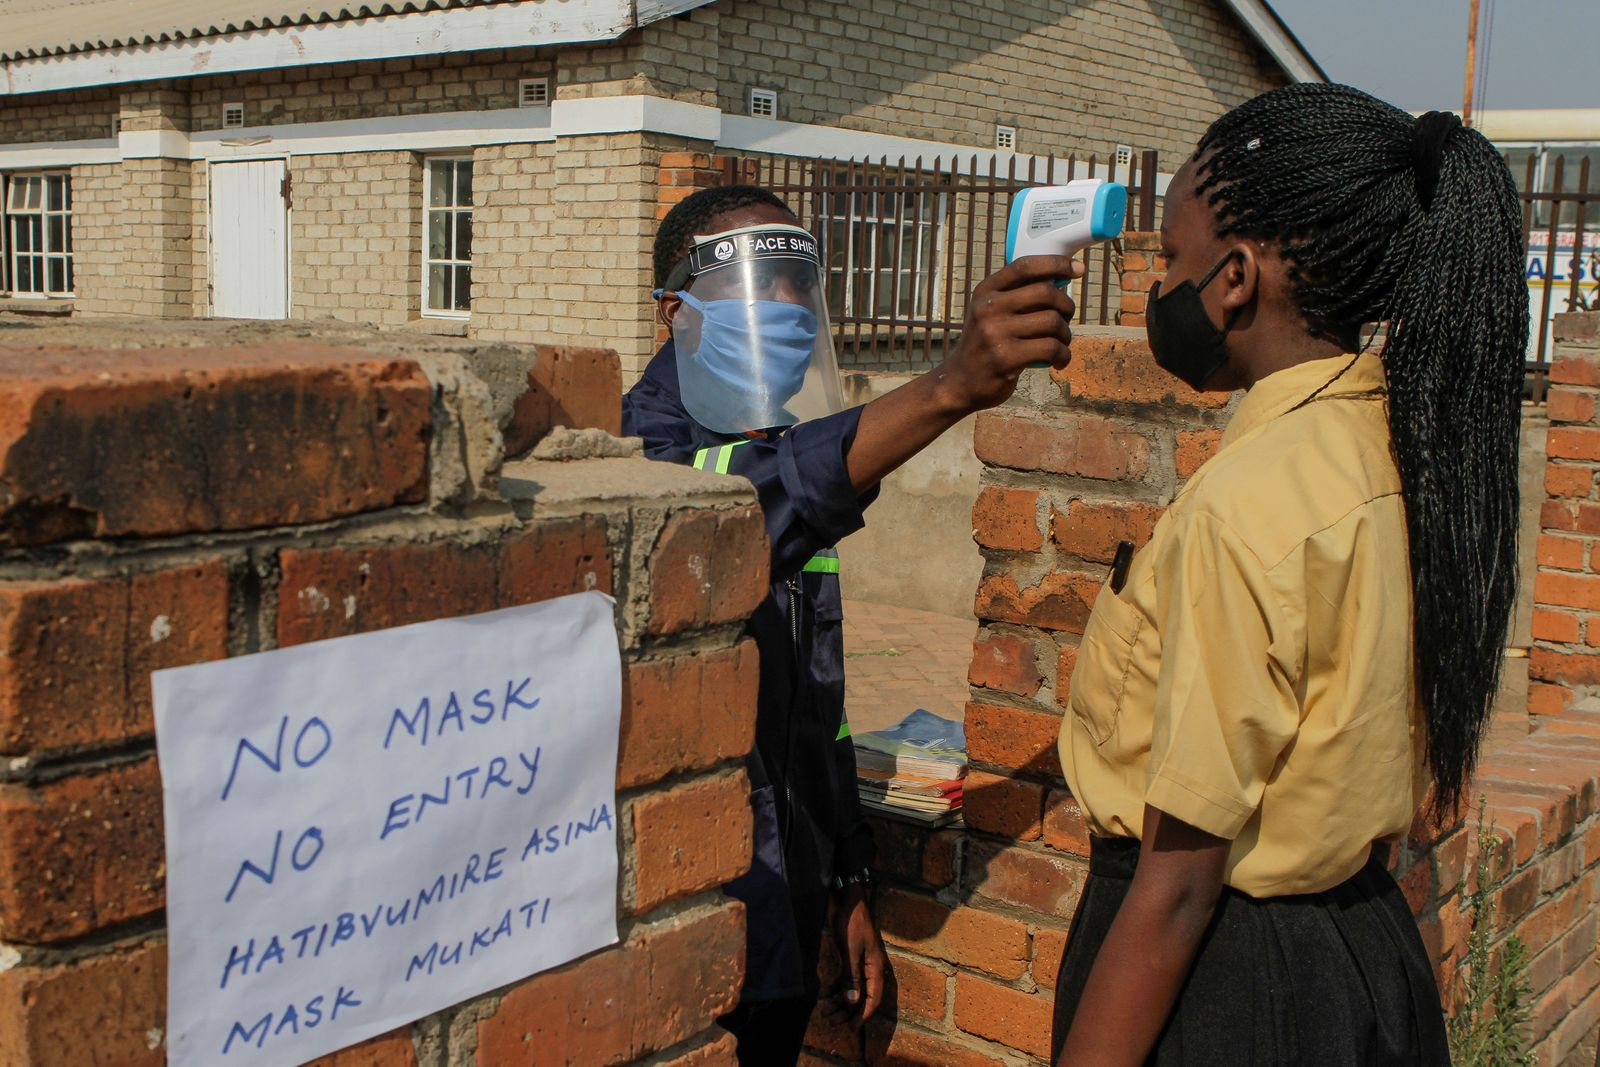 Zimbabwe Schools Reopen For Some Pupils After Lockdown